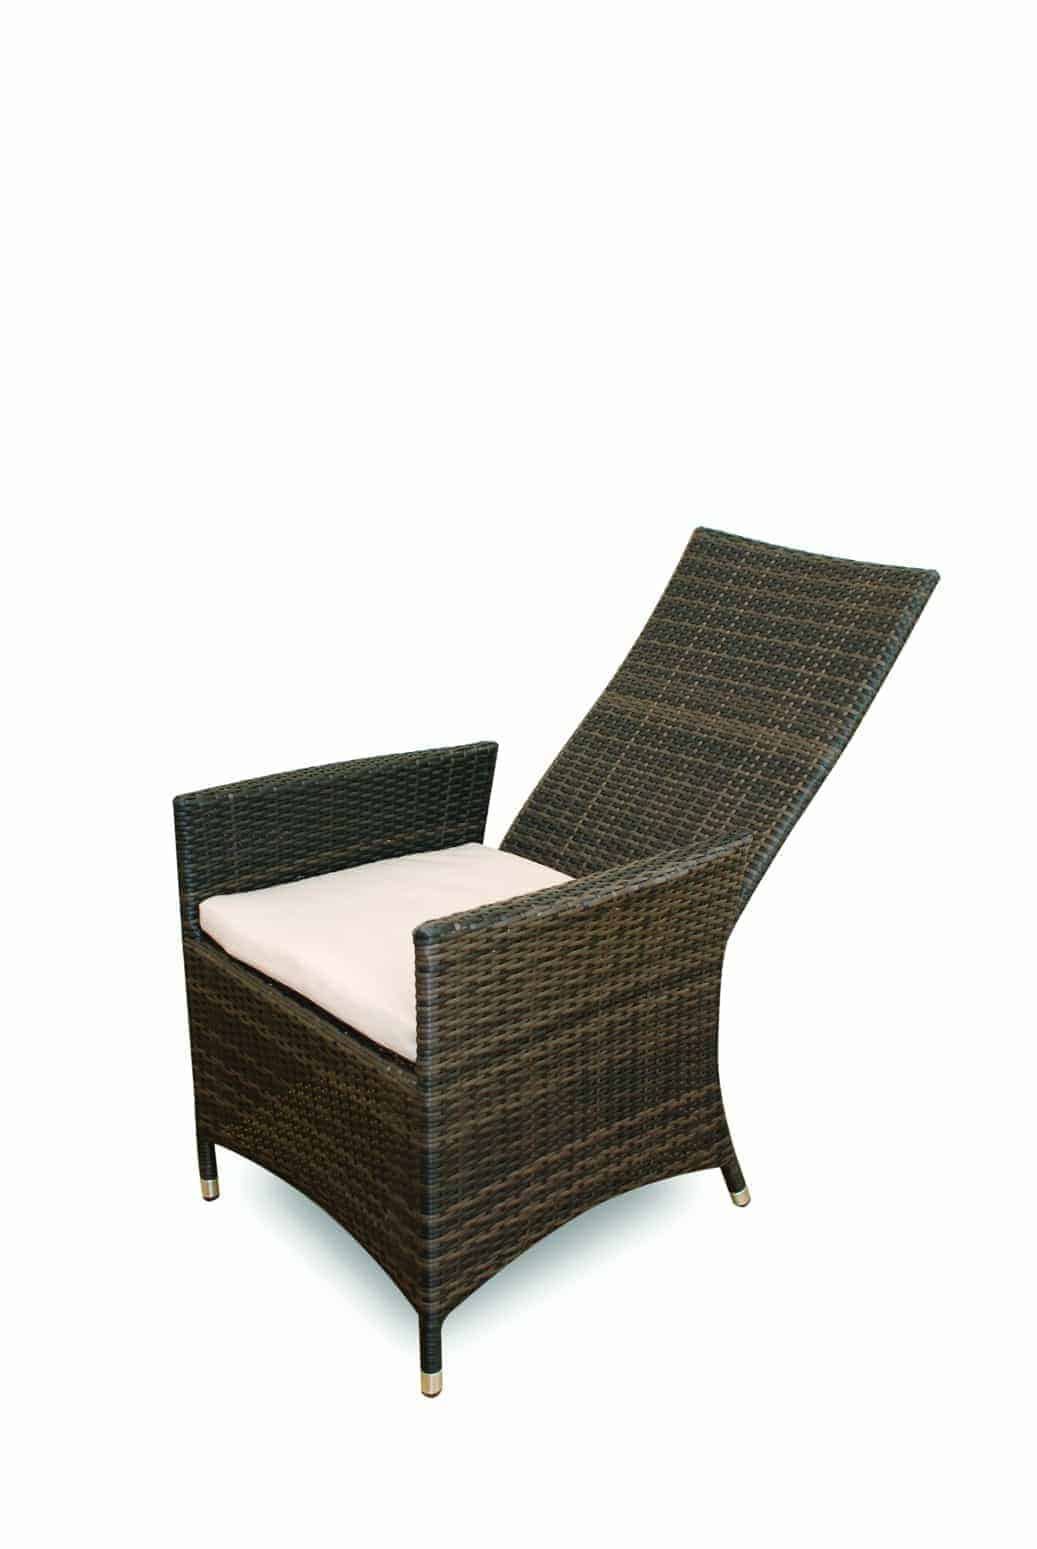 reclining chair - Garden Furniture Dublin